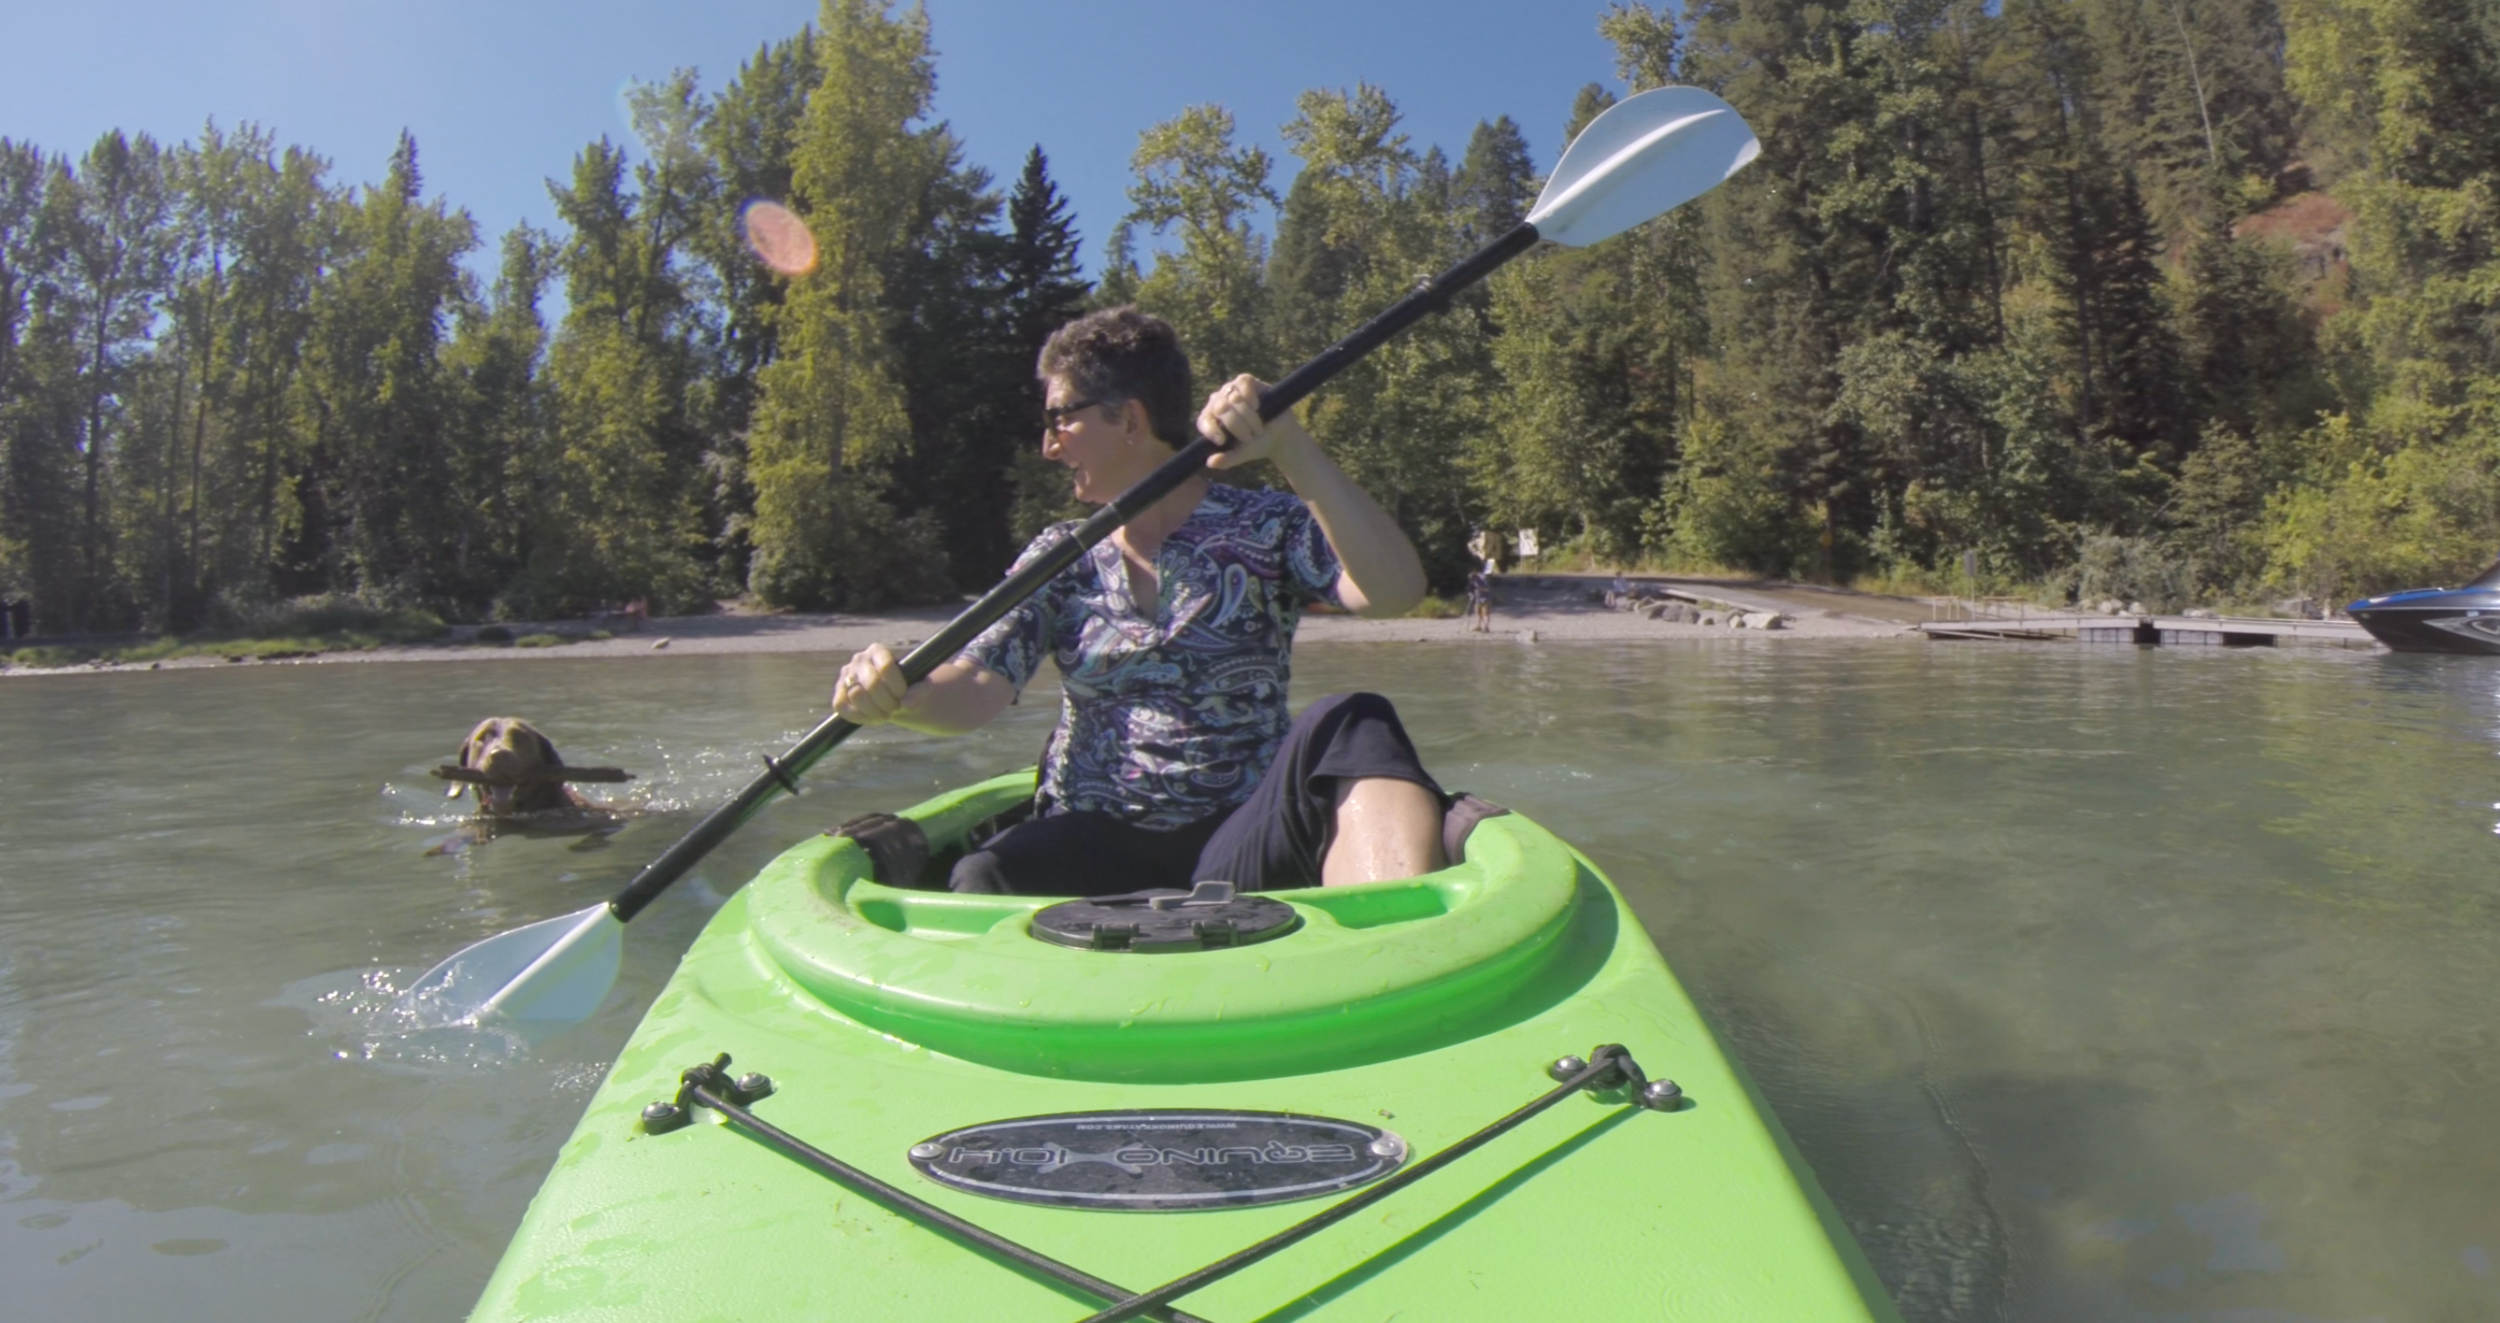 francine roston, rabbi of the flathead valley, kayaks on whitefish Lake in montana.